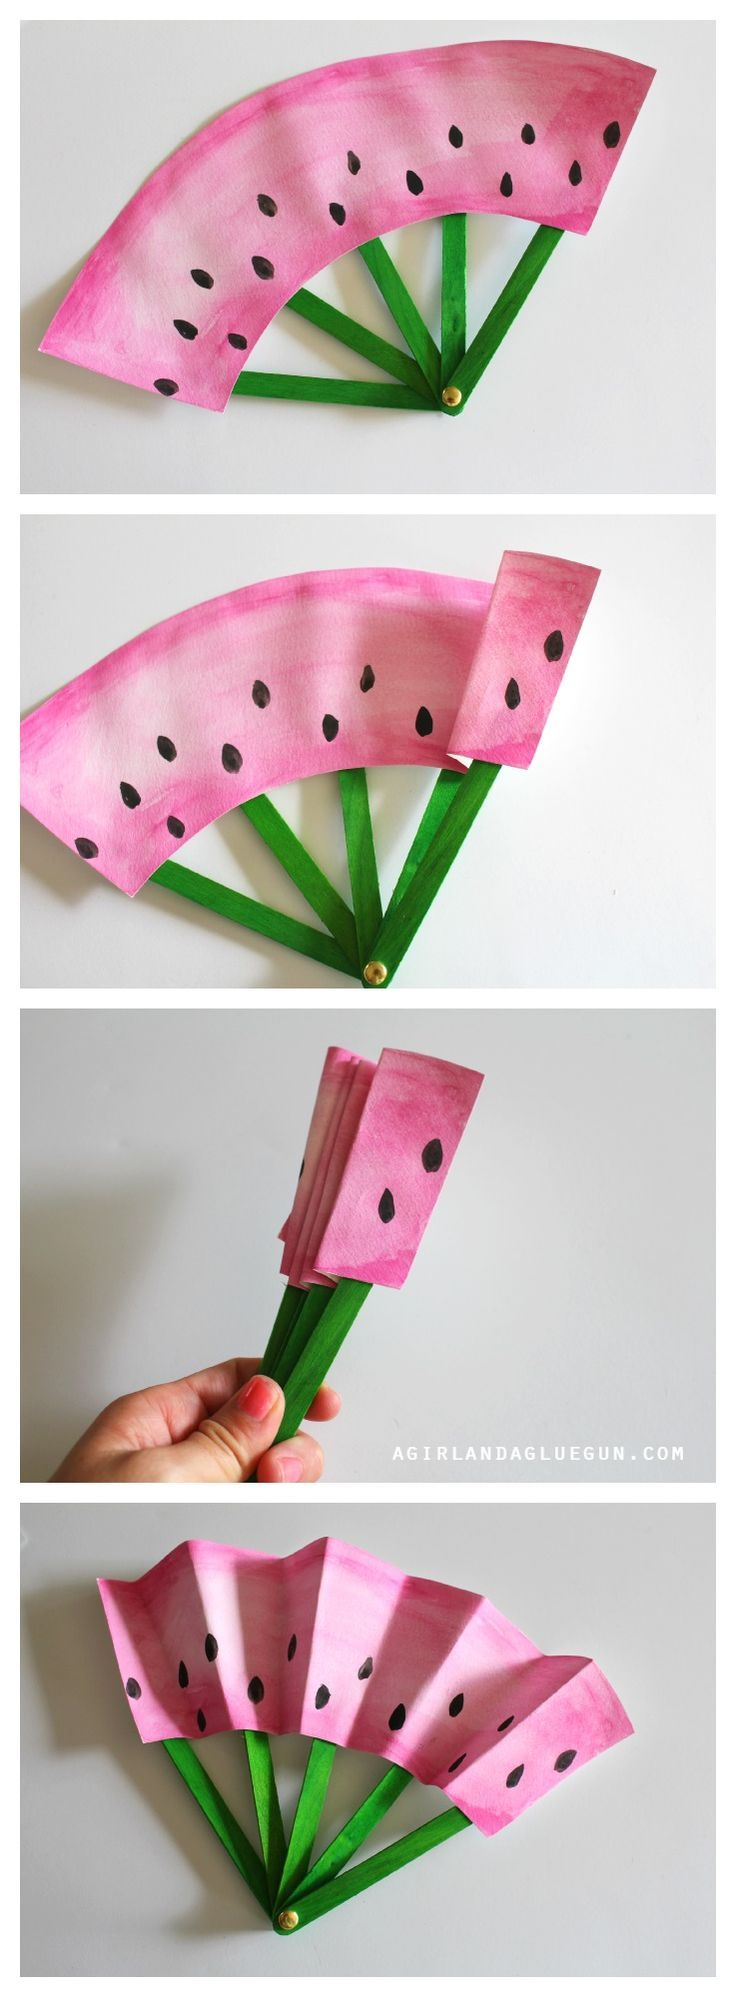 17 best ideas about kid crafts on pinterest diy kids for Cool fun easy crafts